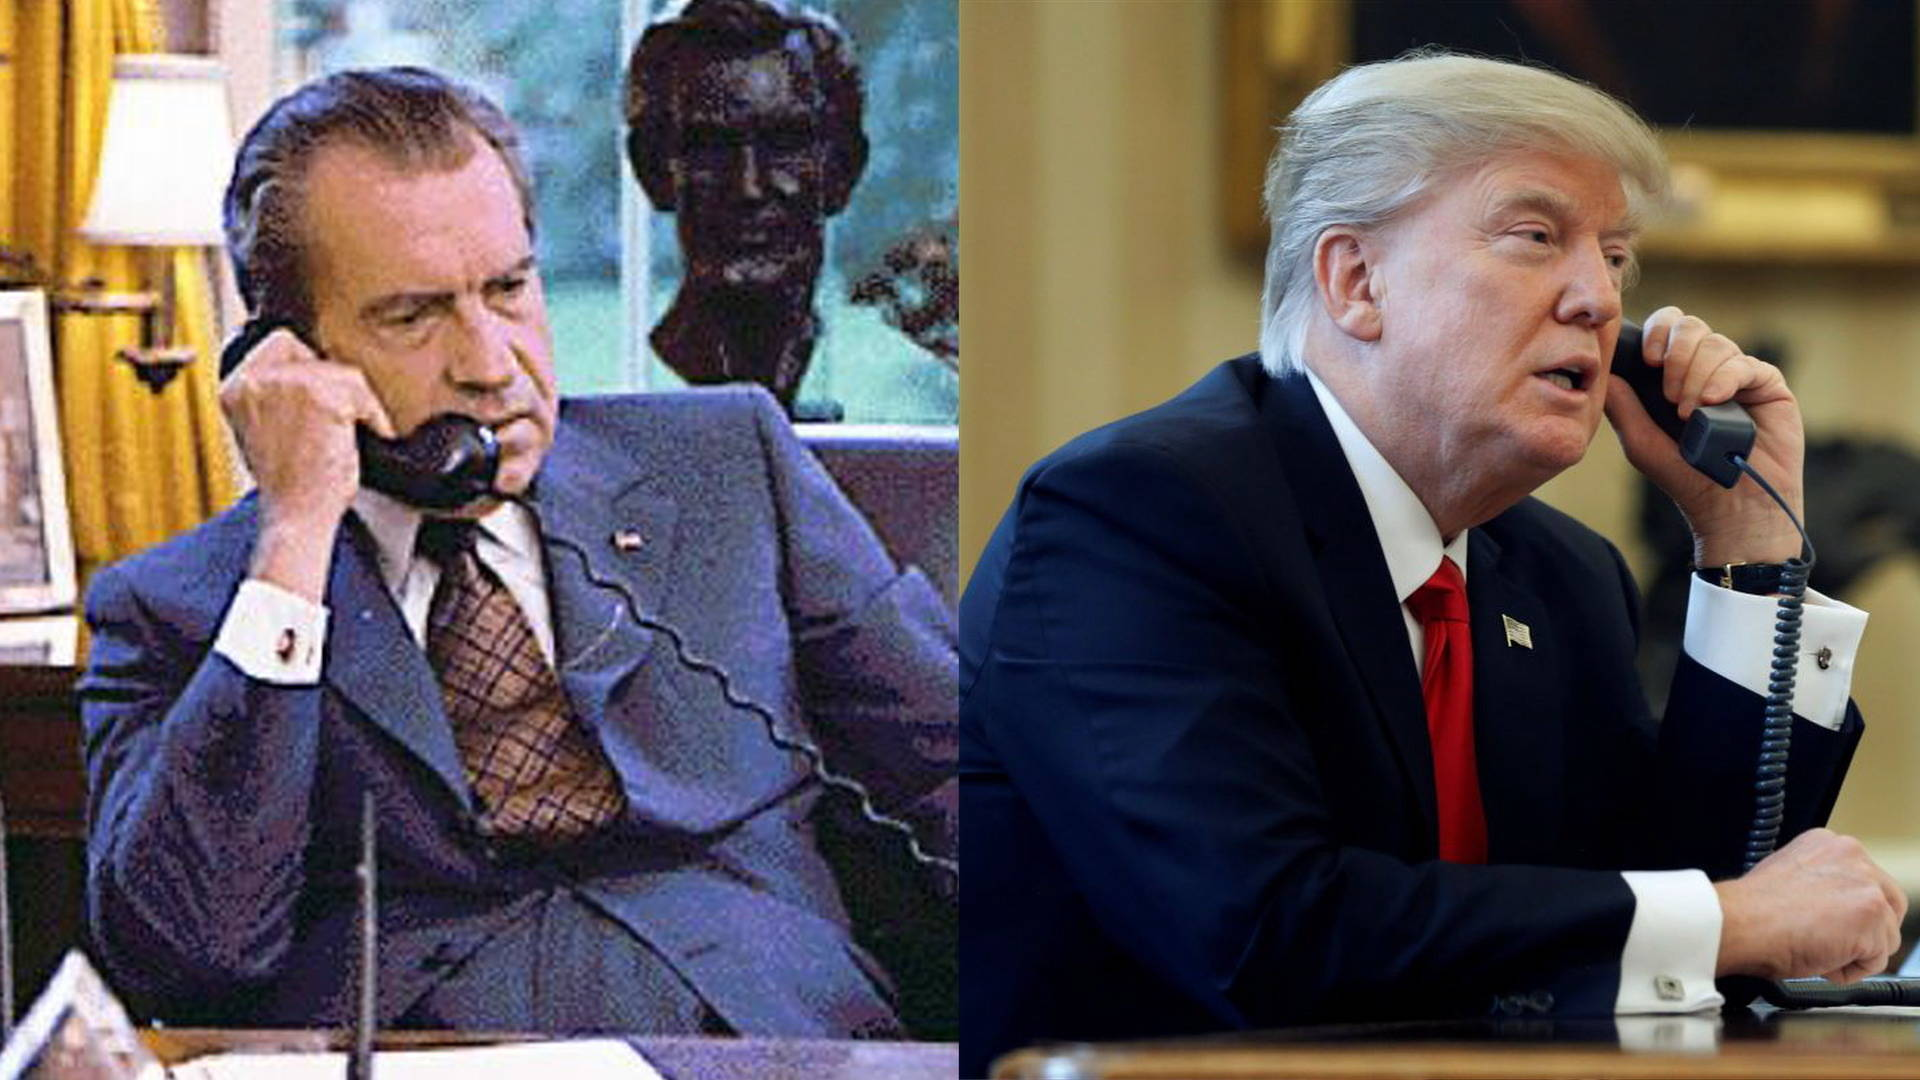 CNN Panelists Trump Is Nixon on Steroids and Stilts Country Headed for Crisis VIDEO